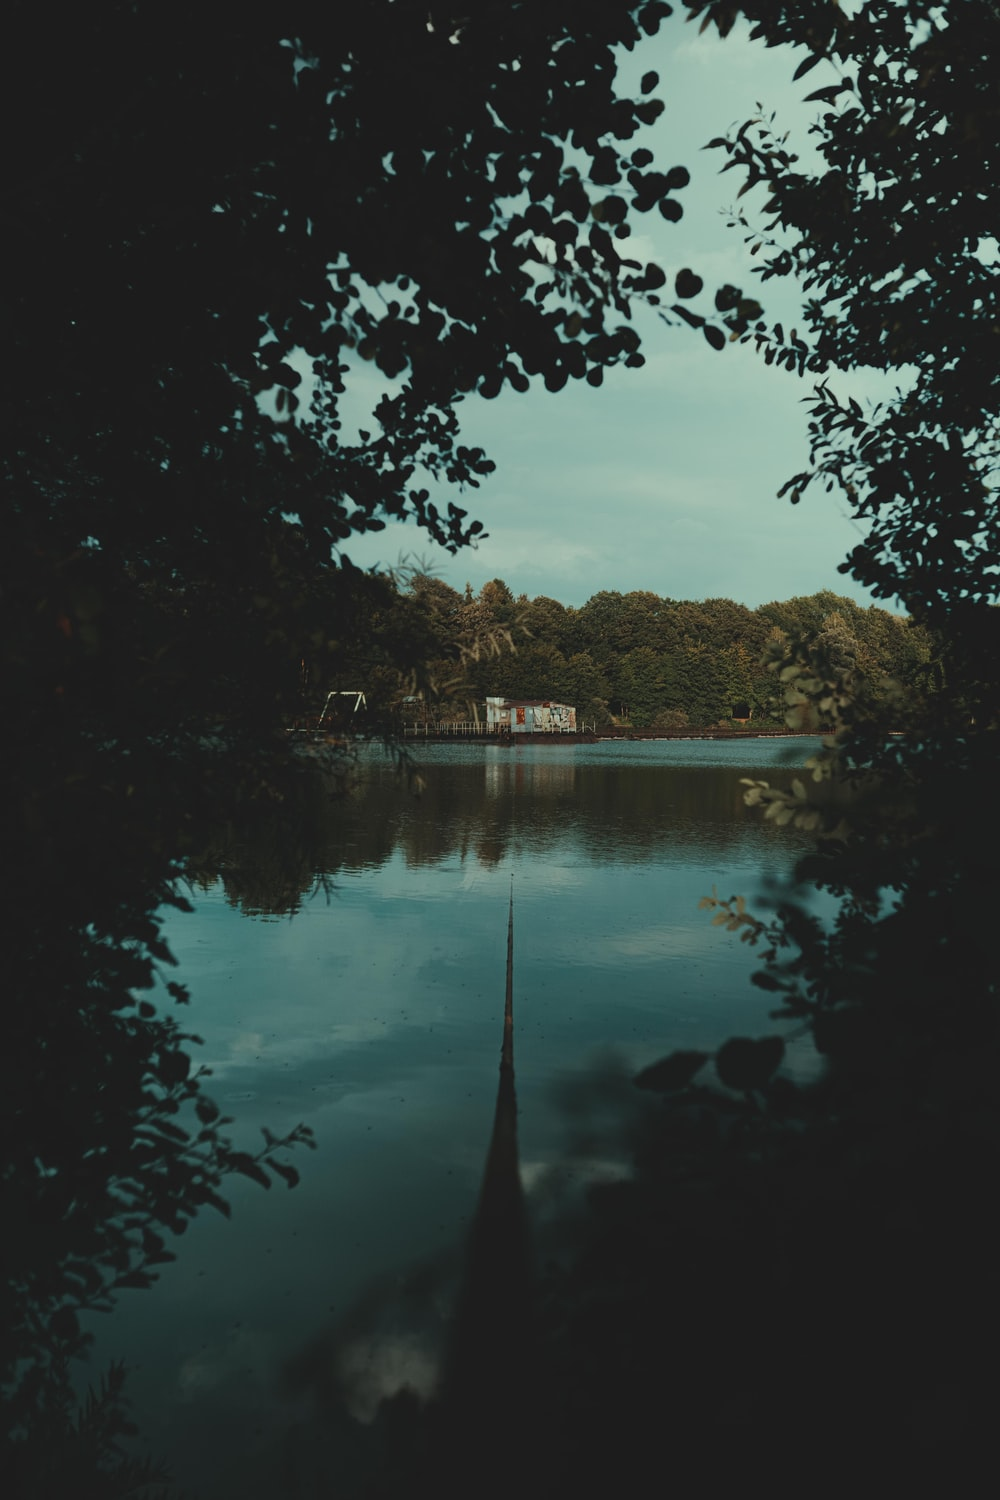 body of water near trees during daytime